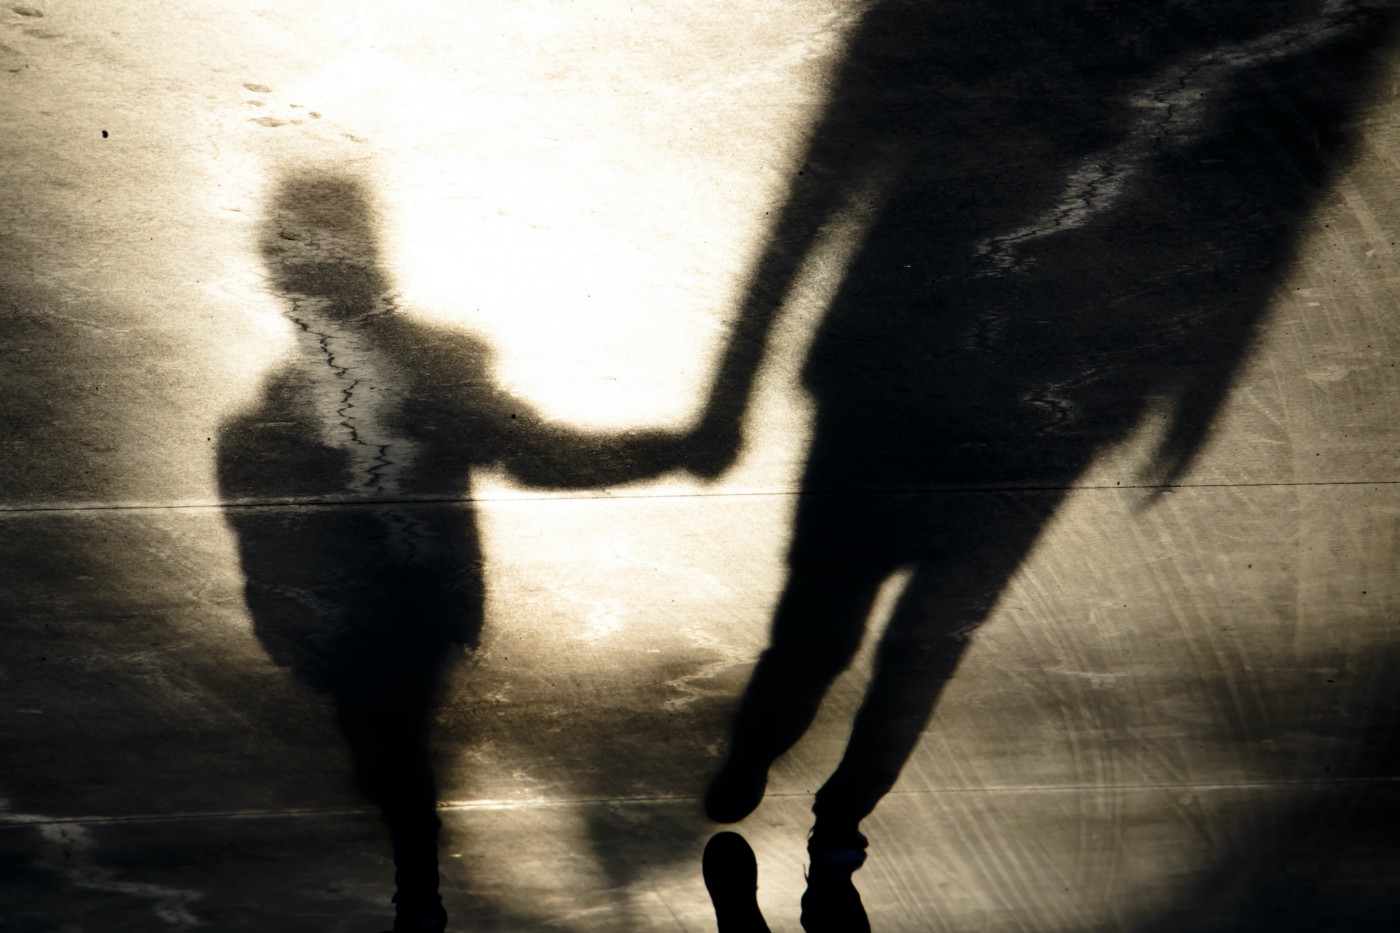 Shadows on pavement cast by a child and an adult holding hands as they walk.